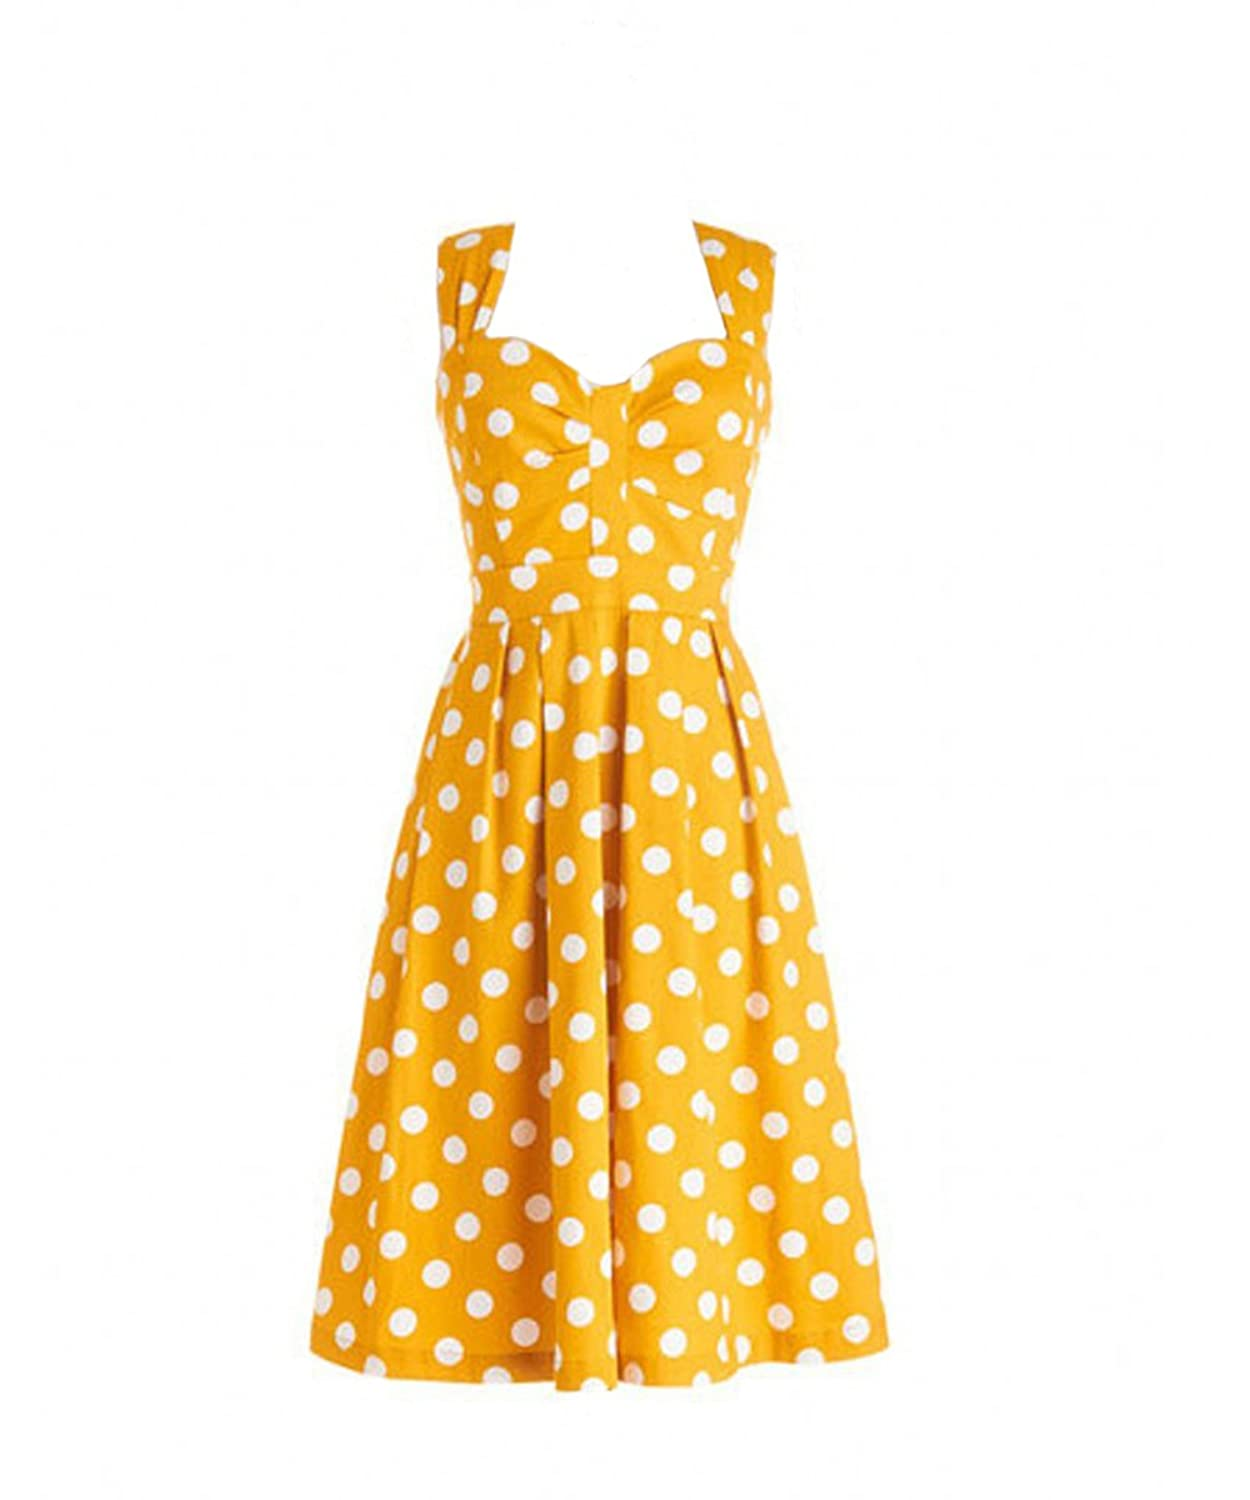 Dressation Ladies Womens Vintage 1950's Polka Dots Swing Rockabilly Party Dress